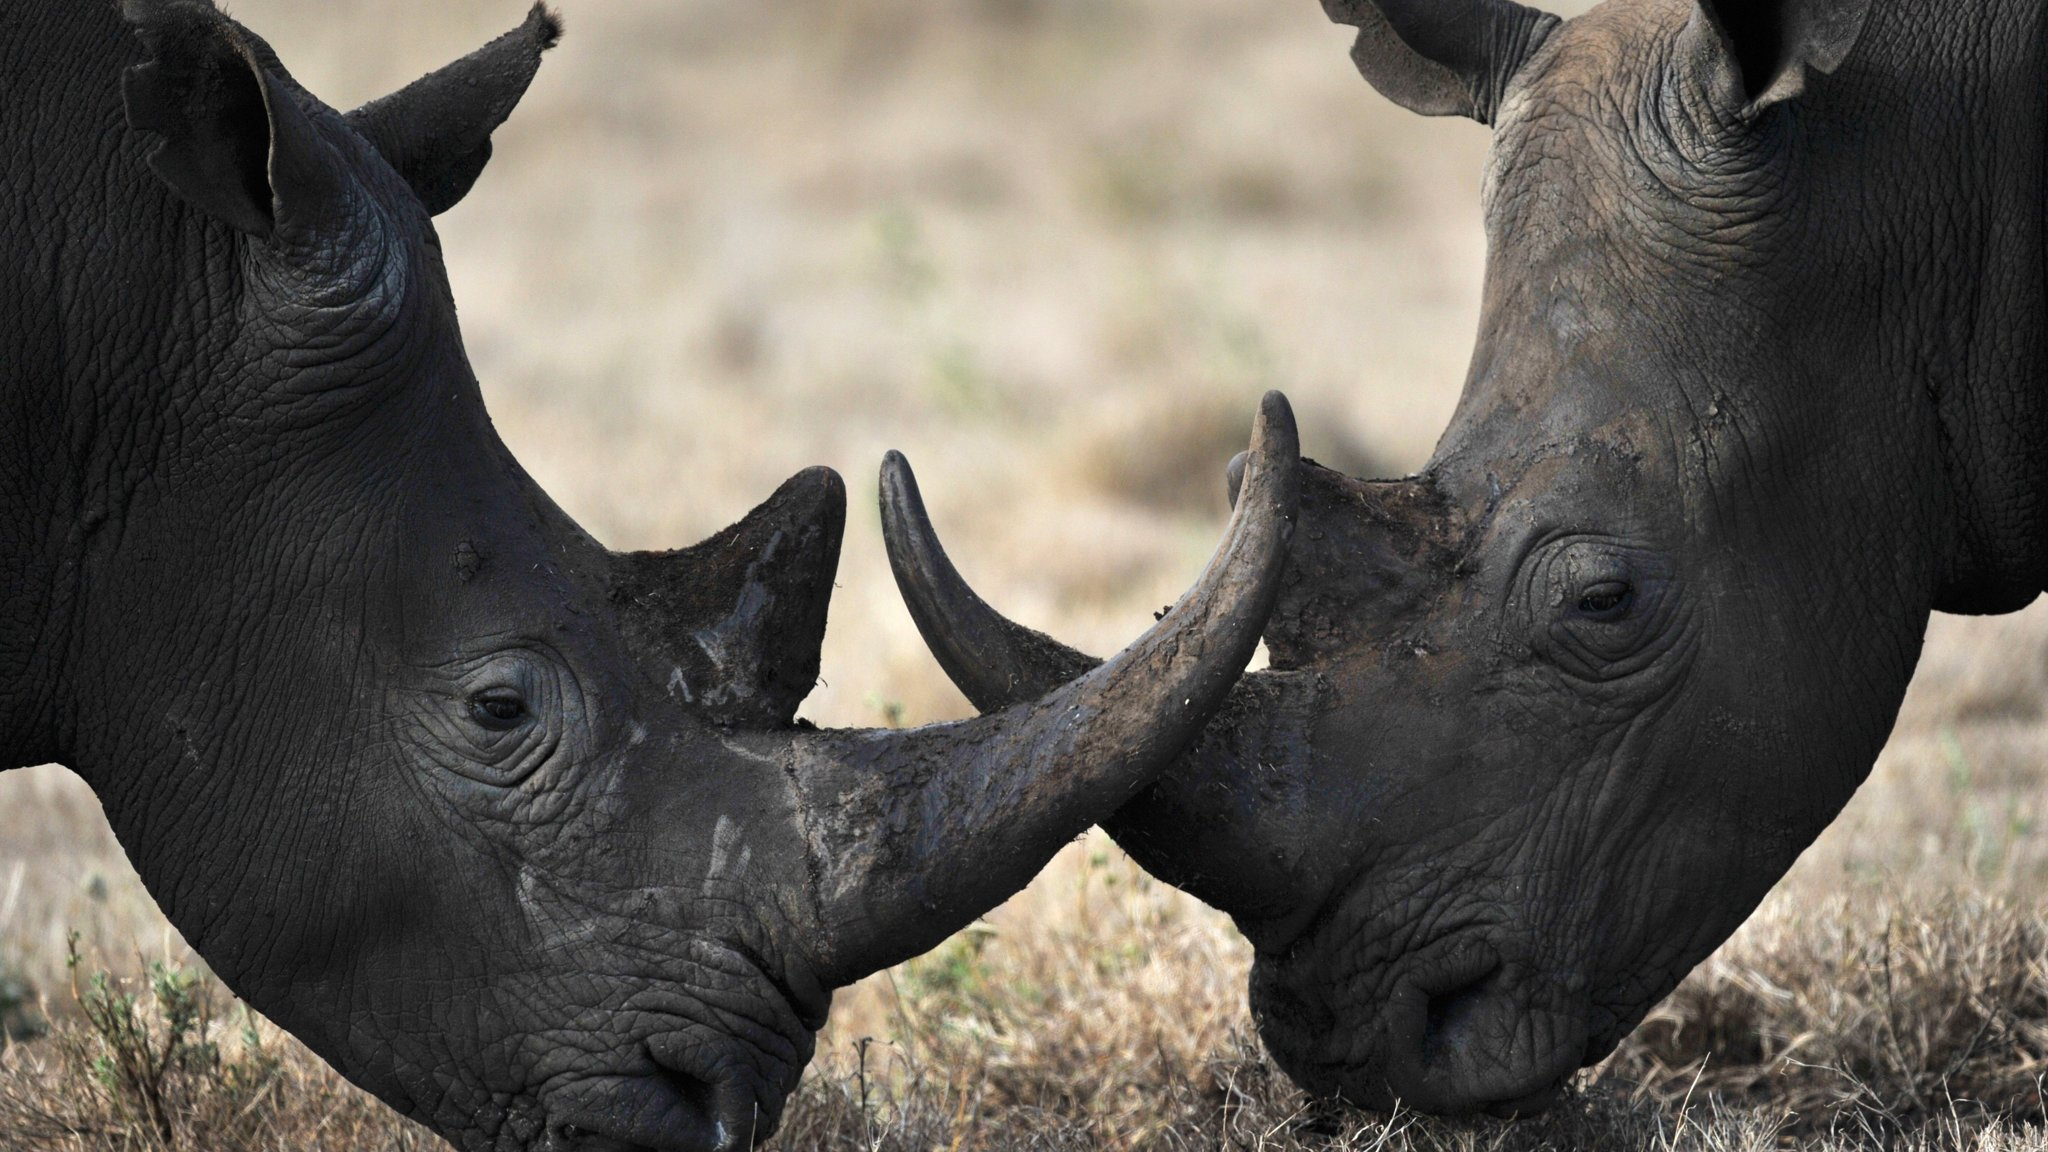 'Rhino bond' breaks new ground in conservation finance